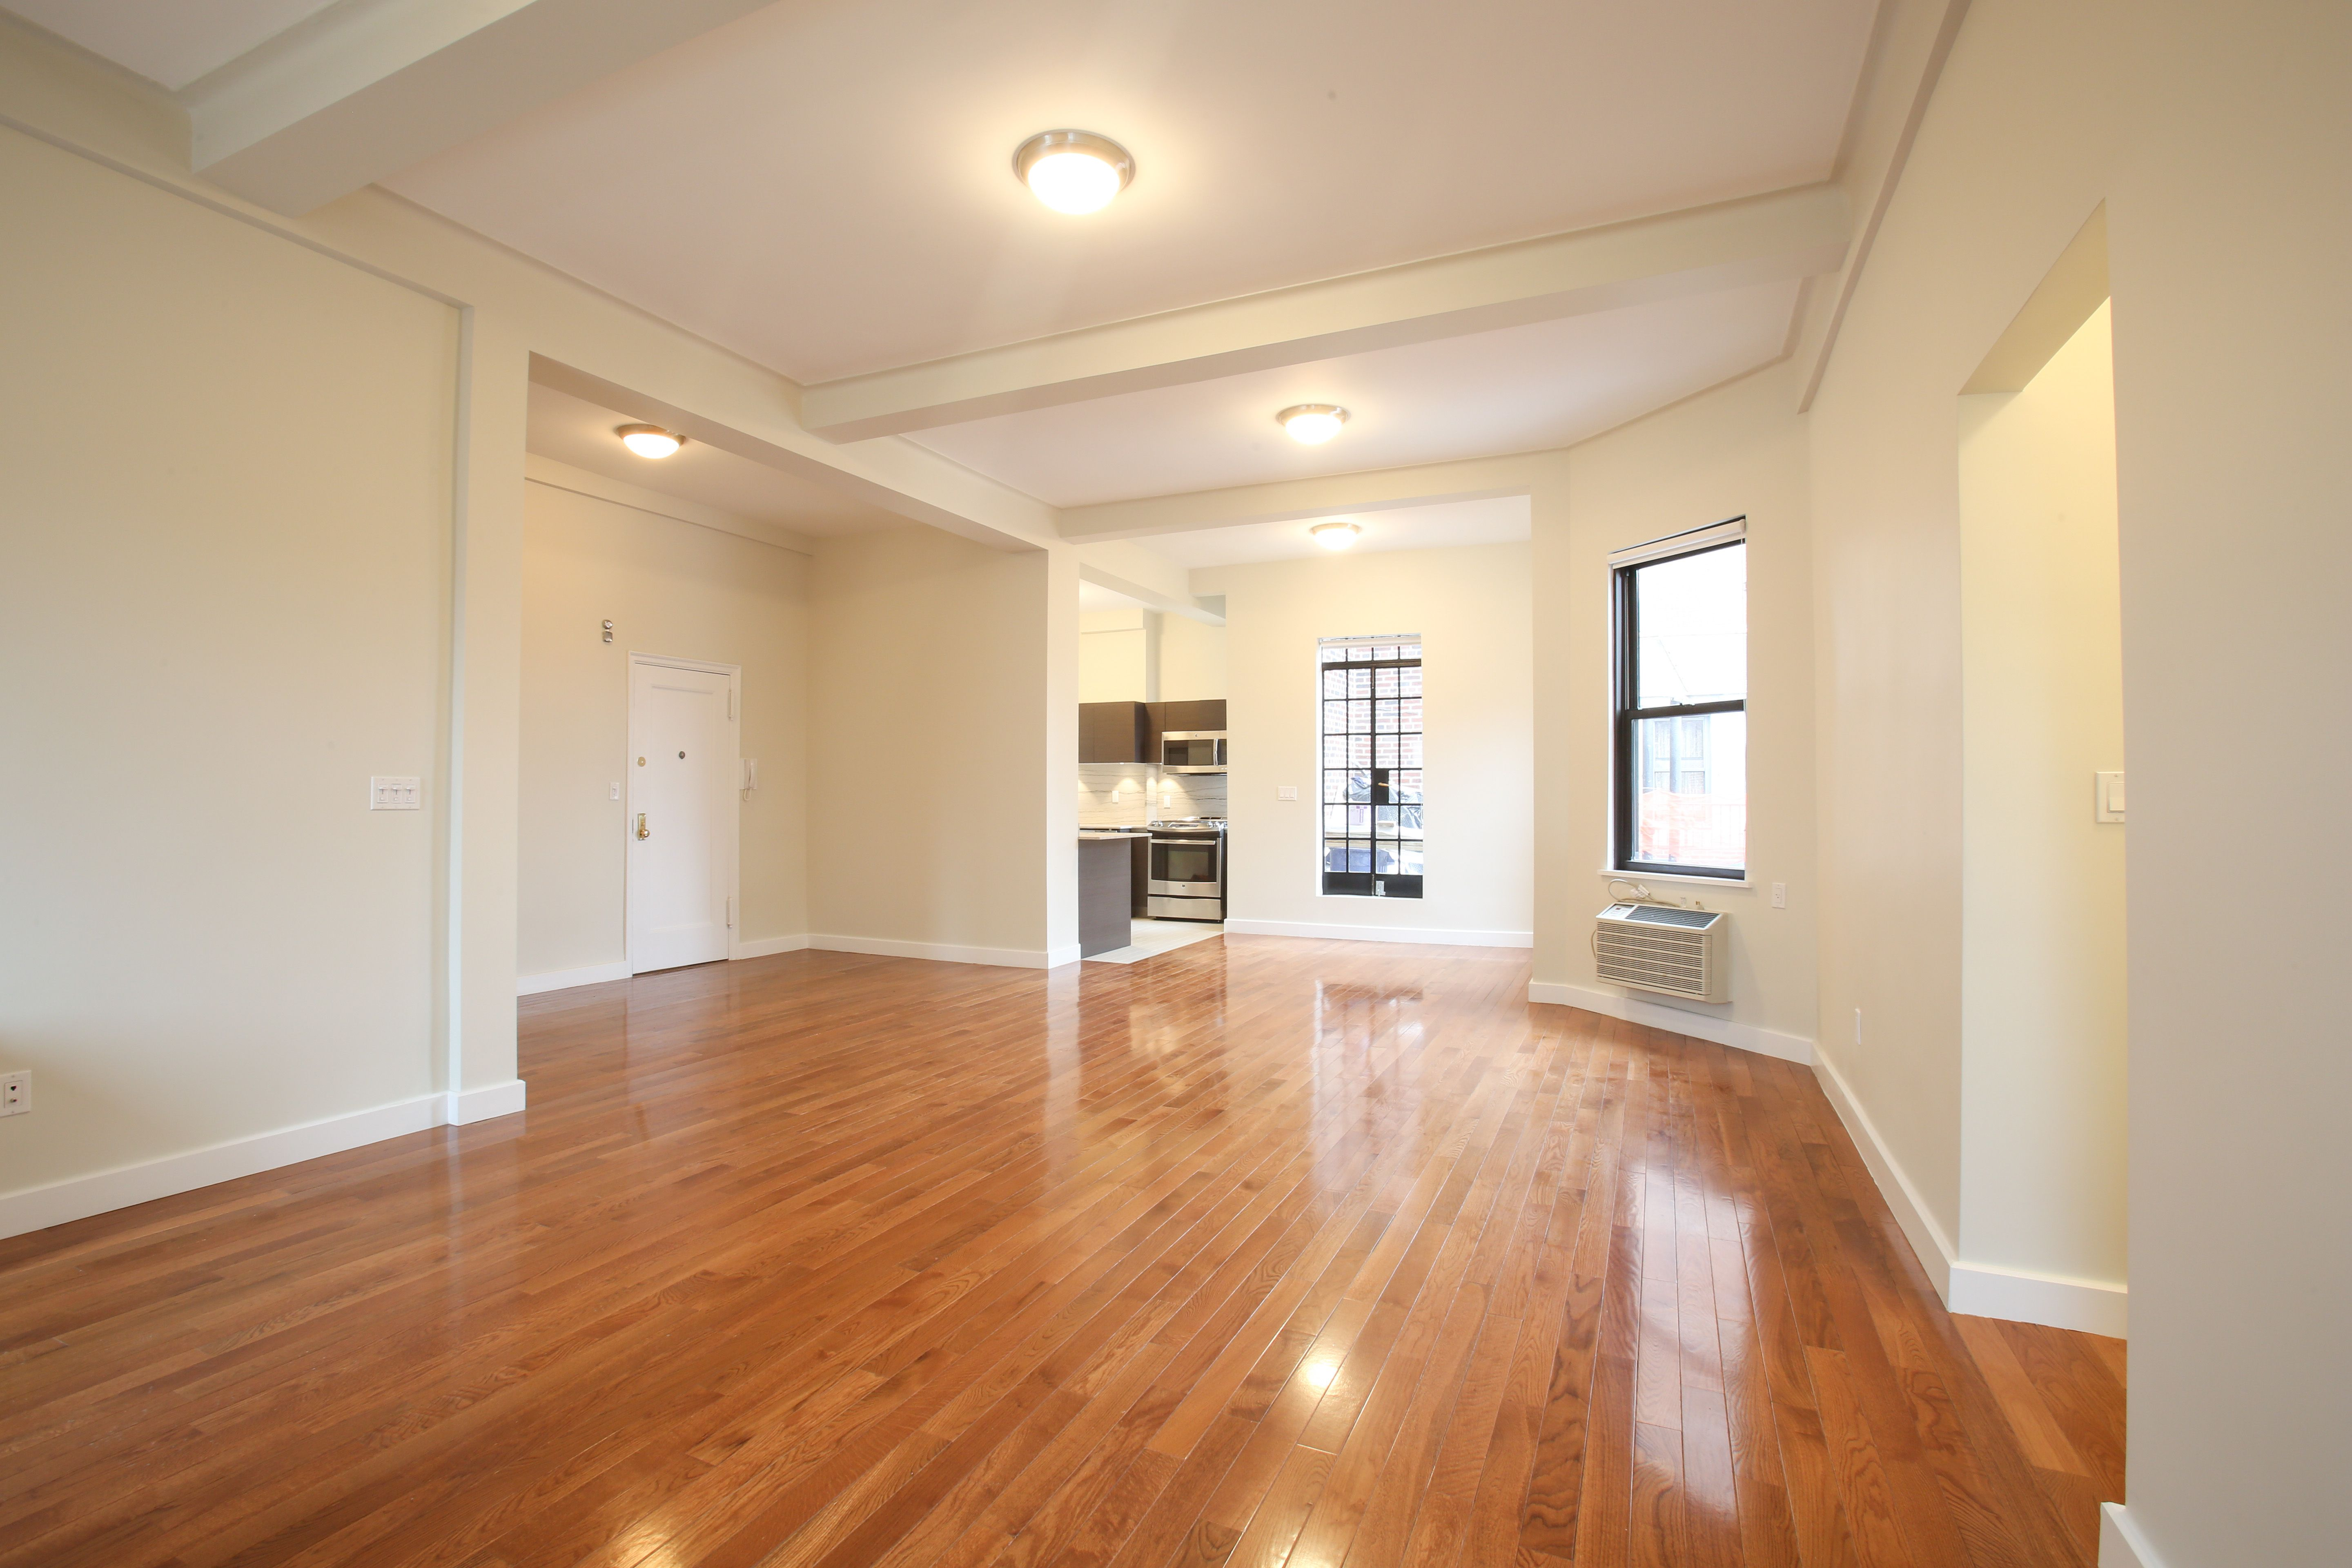 Stonehenge Mews 58th Apartment For Rent Nyc Apartments For Rent Apartment Terrace